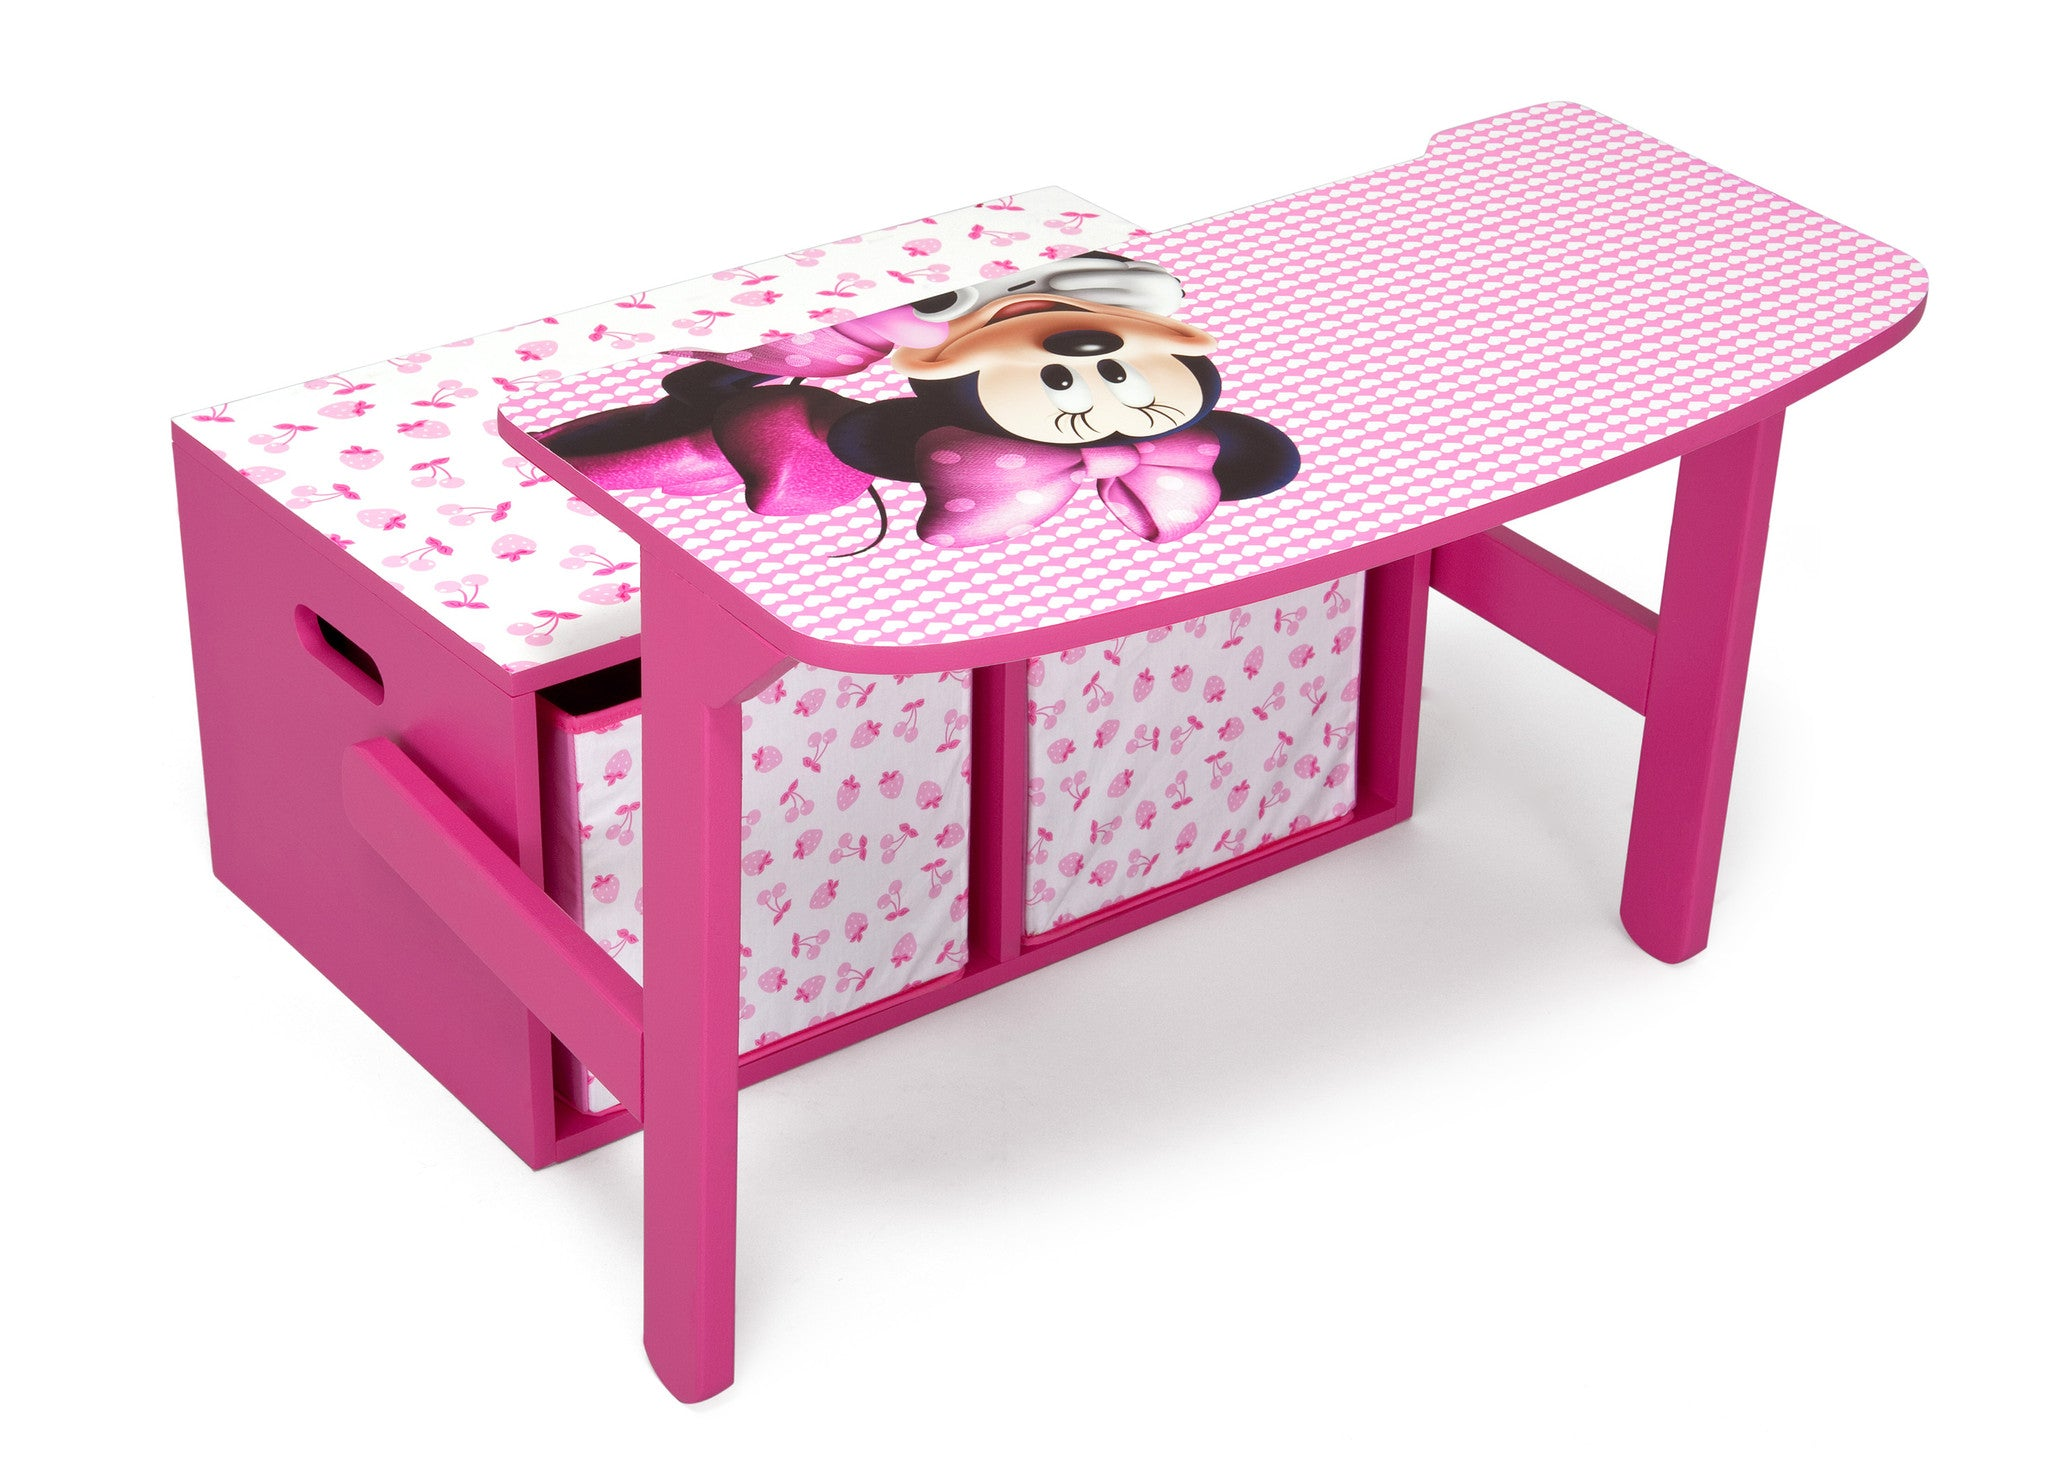 Radiator Flush Walmart >> [minnie mouse outdoor table and chairs] - 100 images - minnie mouse en dorado y rosa minnie ...